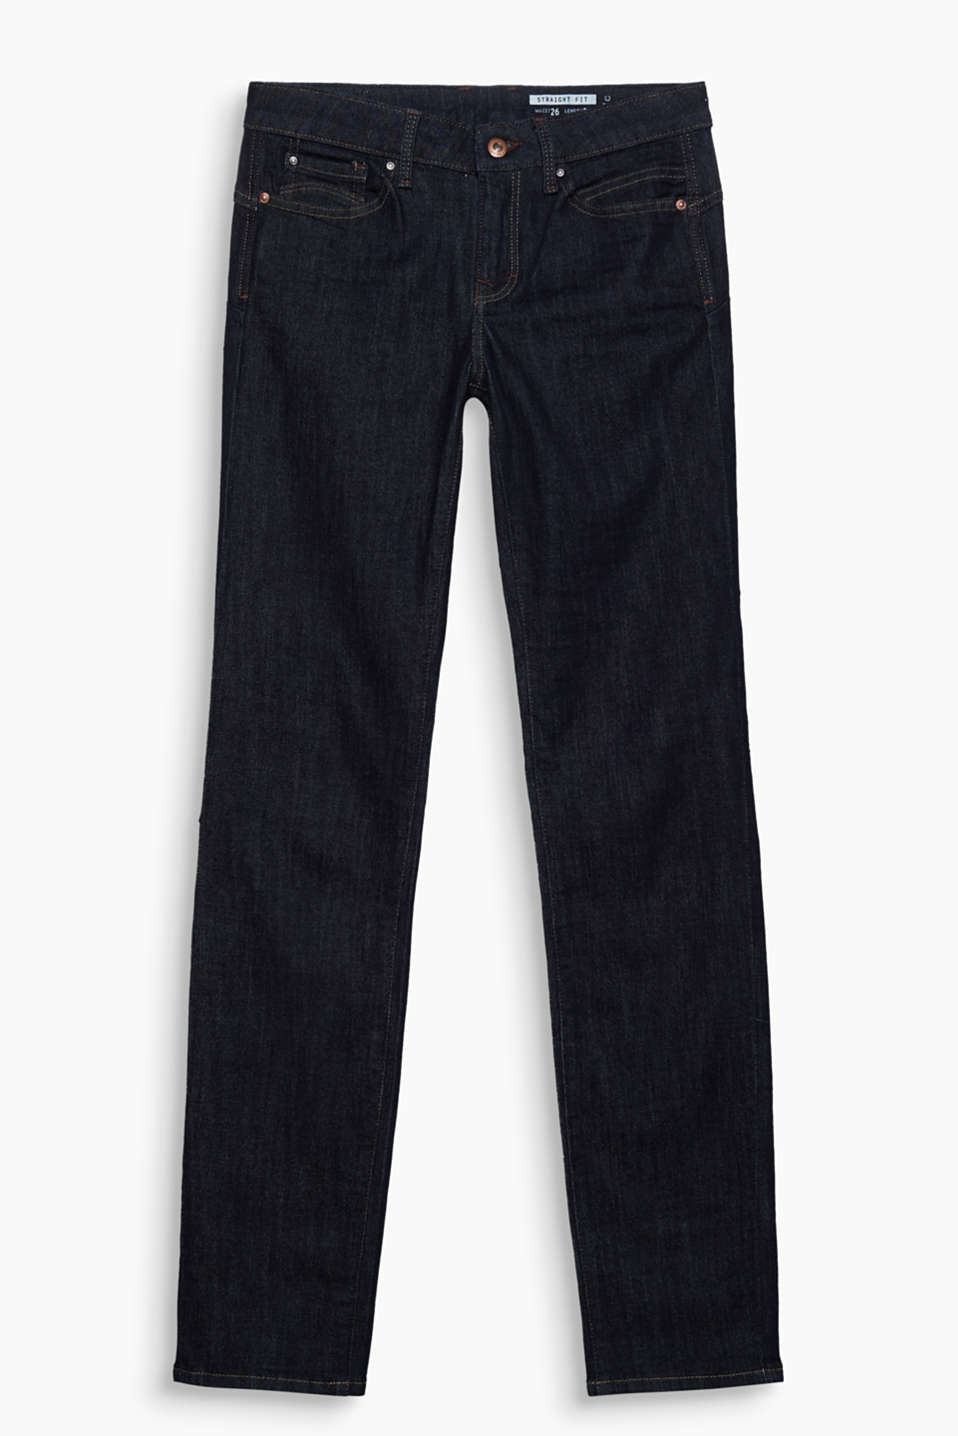 Straight cut stretch jeans in straightforward dark denim with flap pockets at the back